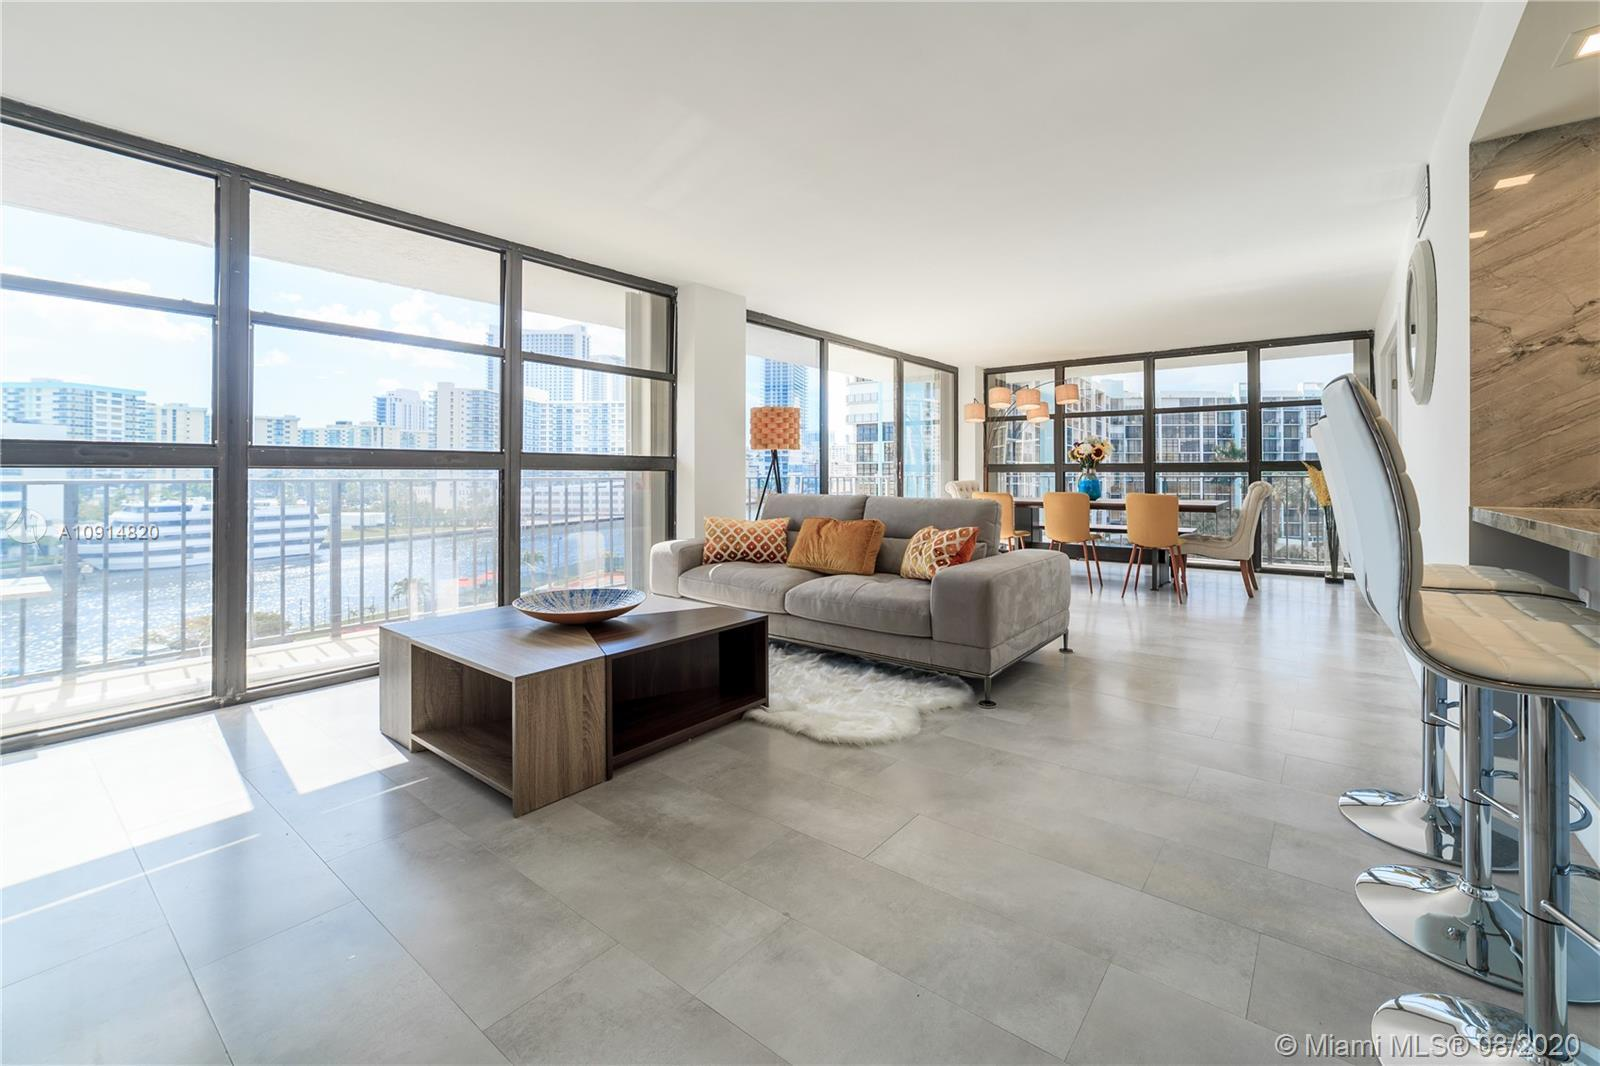 GORGEOUS 2 BDRS + A DEN (OFFICE SPACE) CORNER UNIT WITH WRAP AROUND BALCONY AND INTERCOASTAL VIEW. T